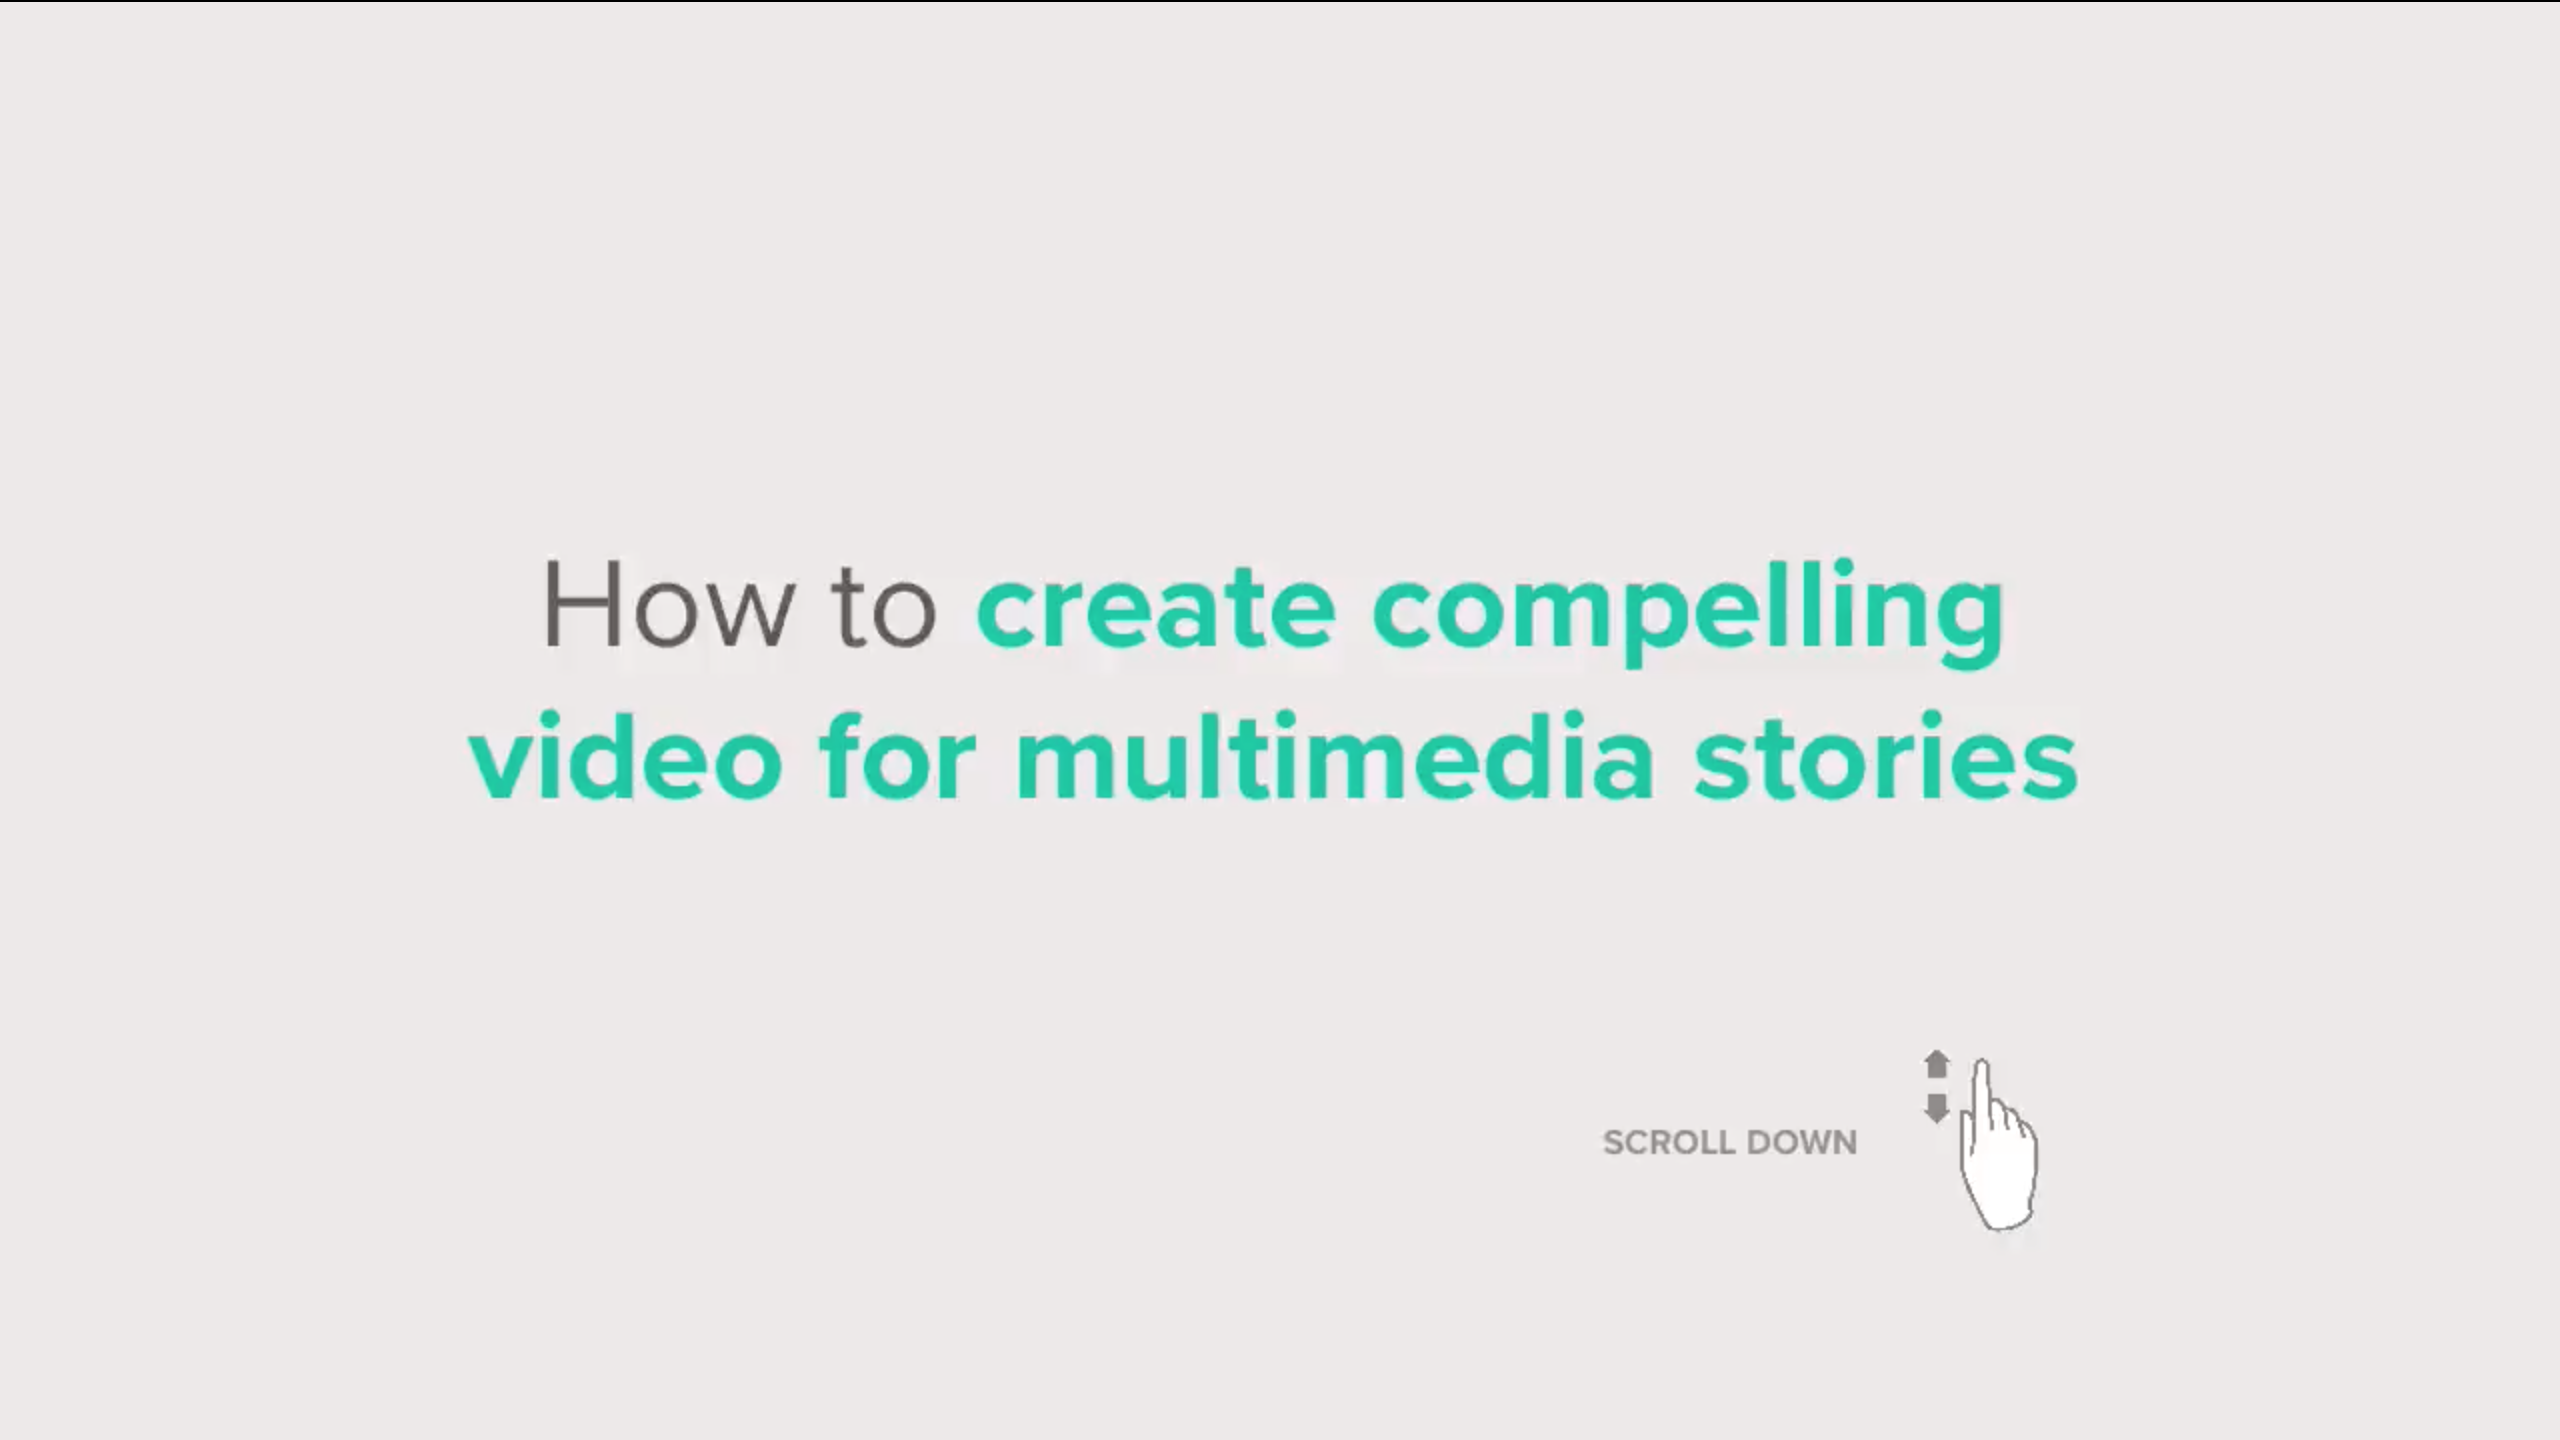 How to create compelling video for multimedia stories